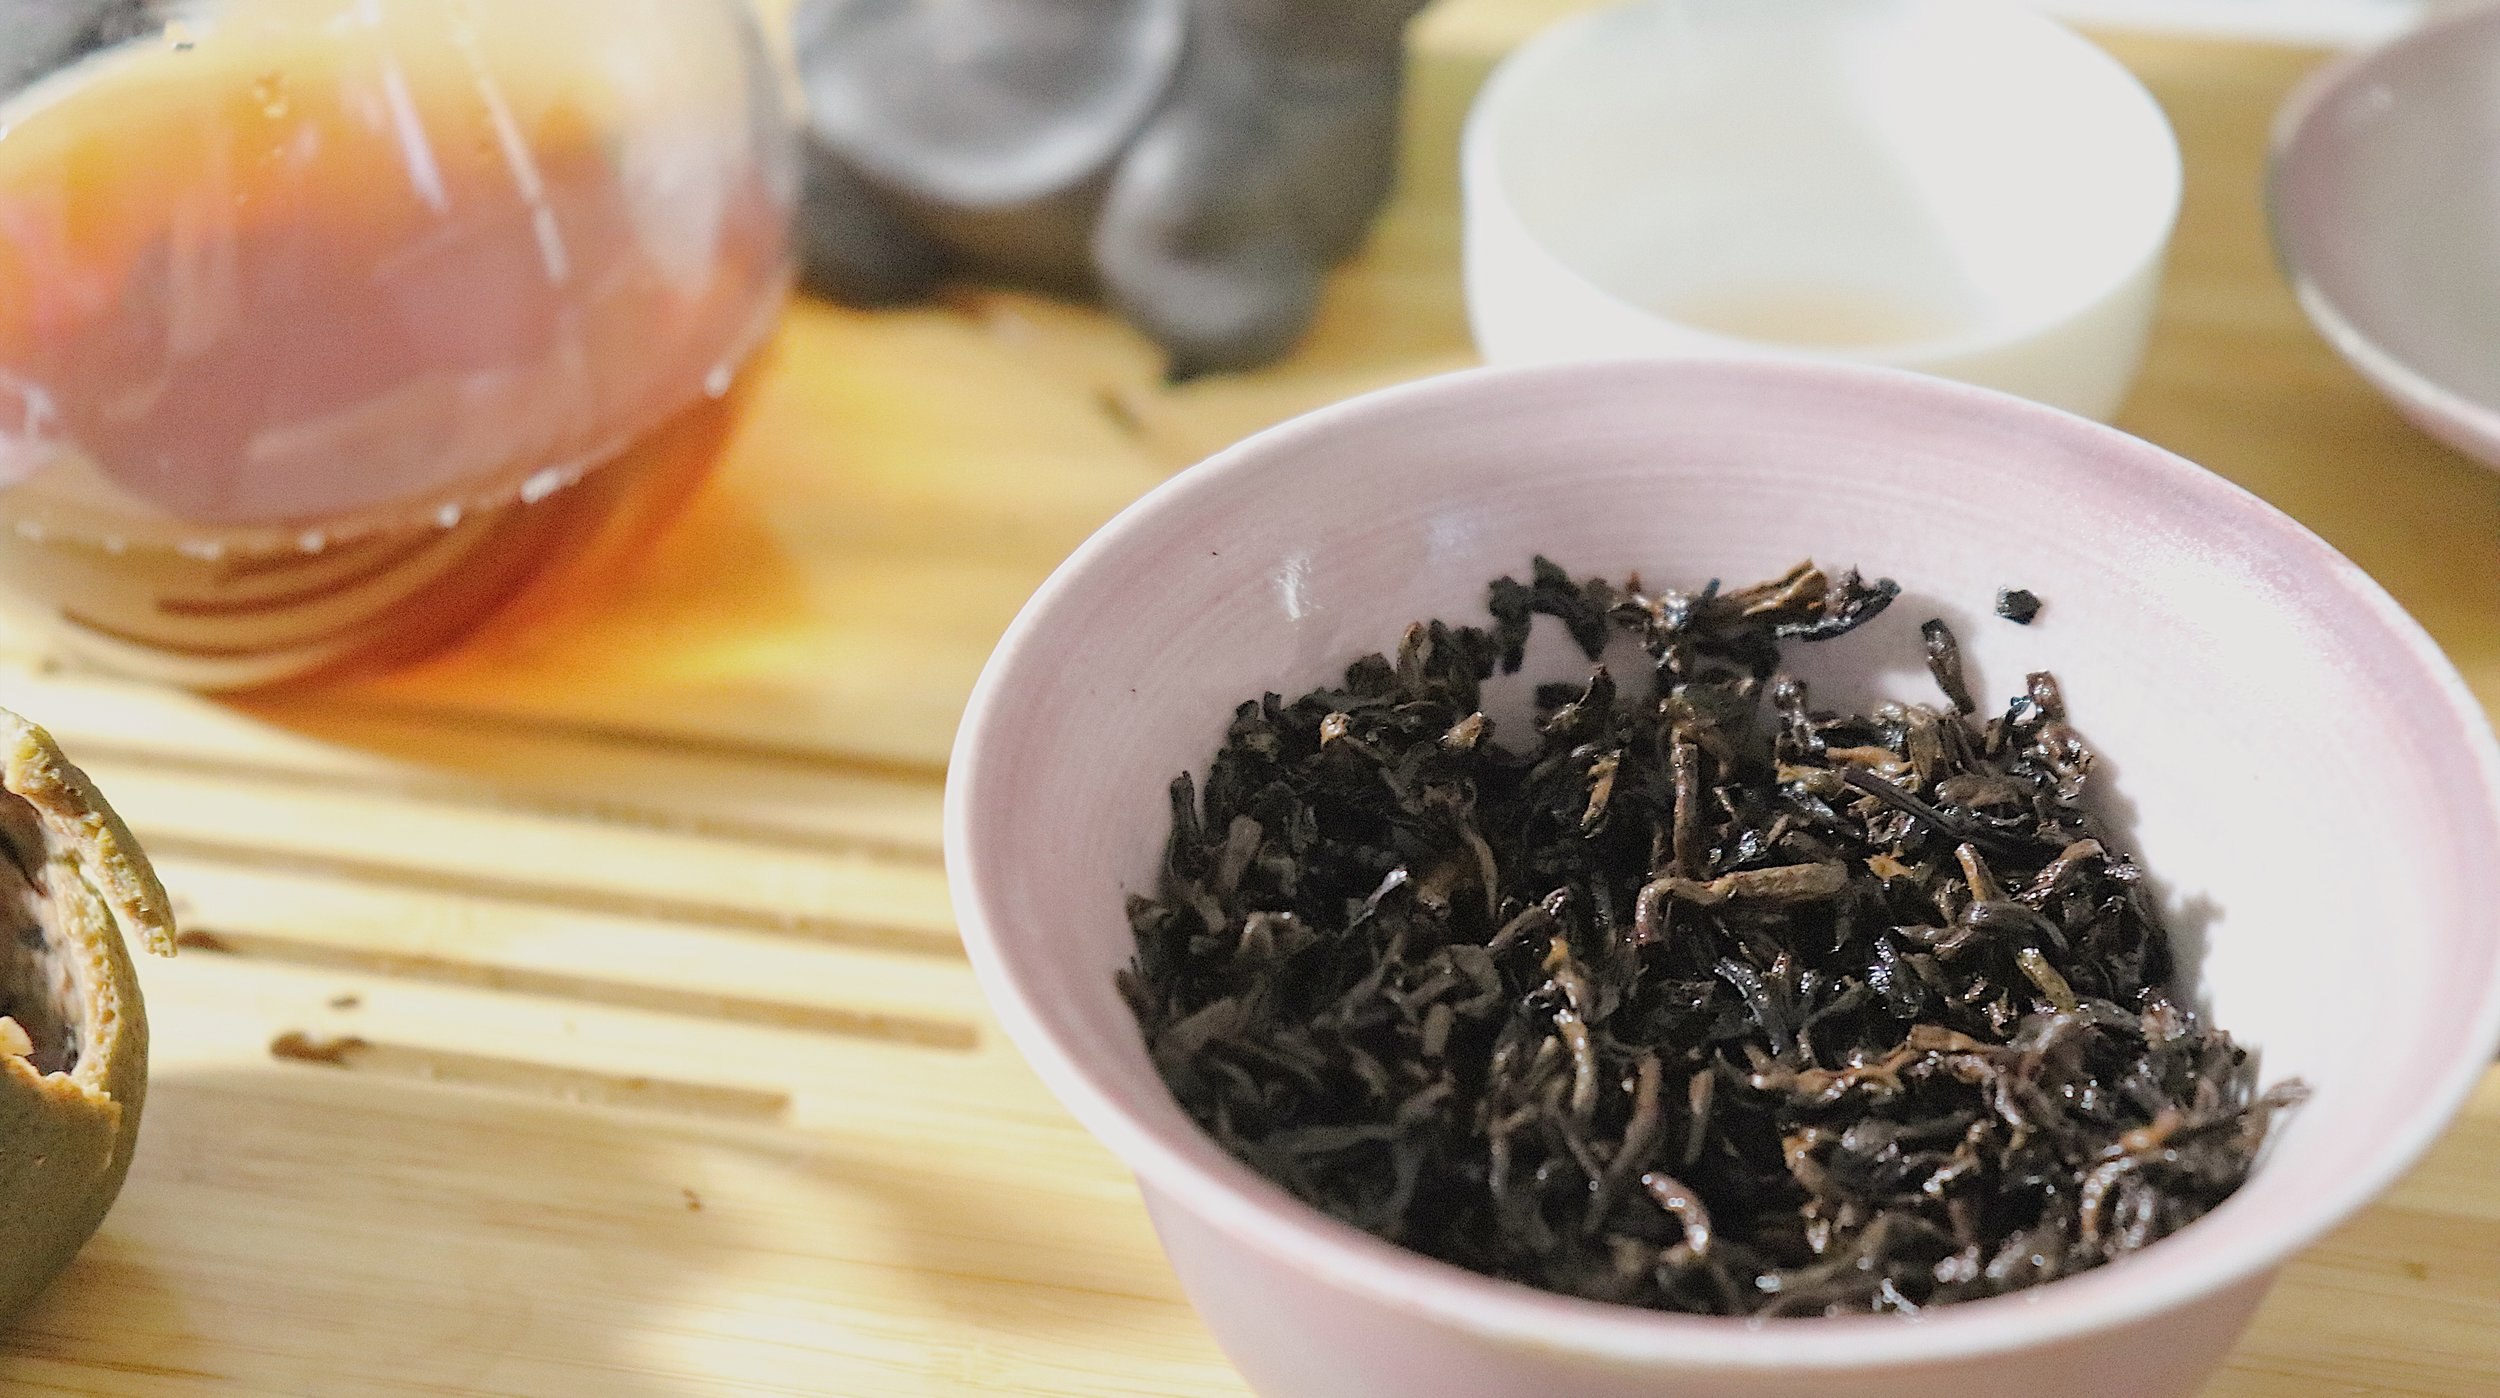 The pu'erh leaves once removed from the orange (around steep 12/13).